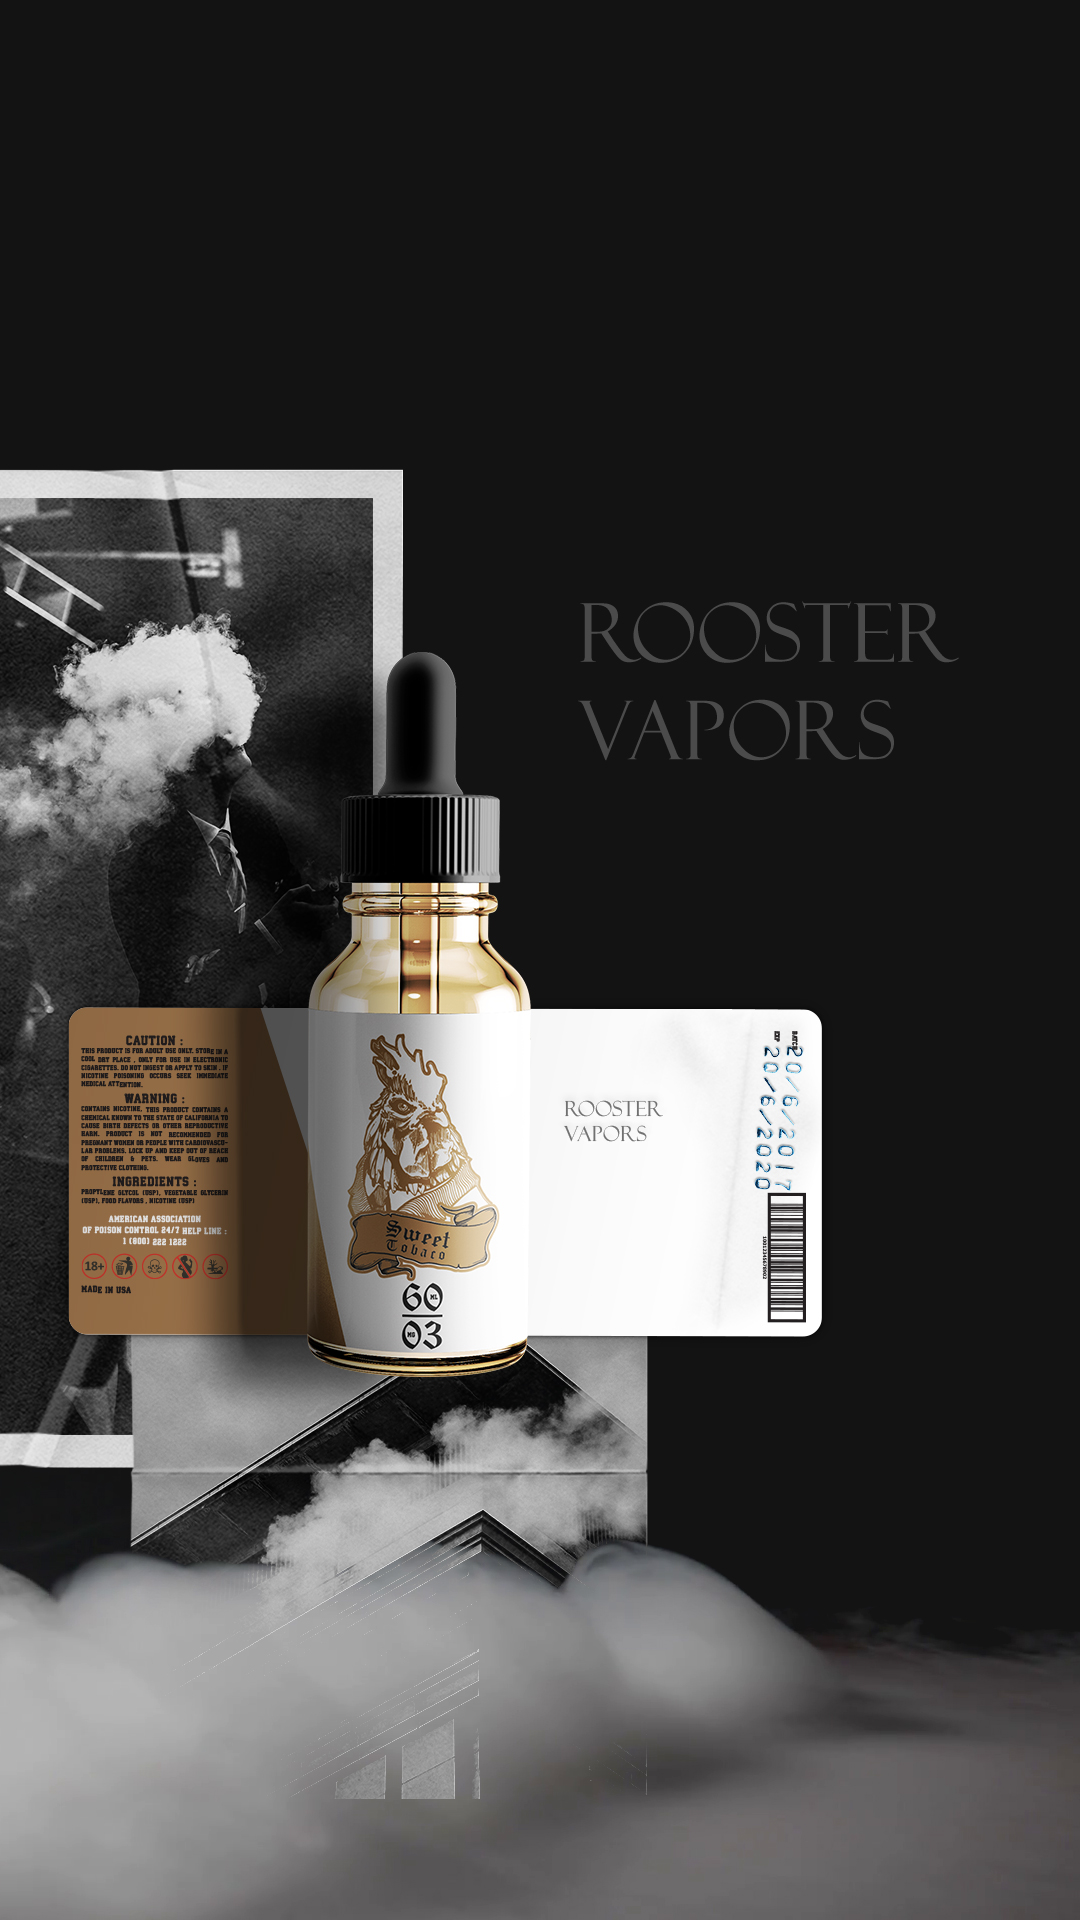 Rooster Vapors